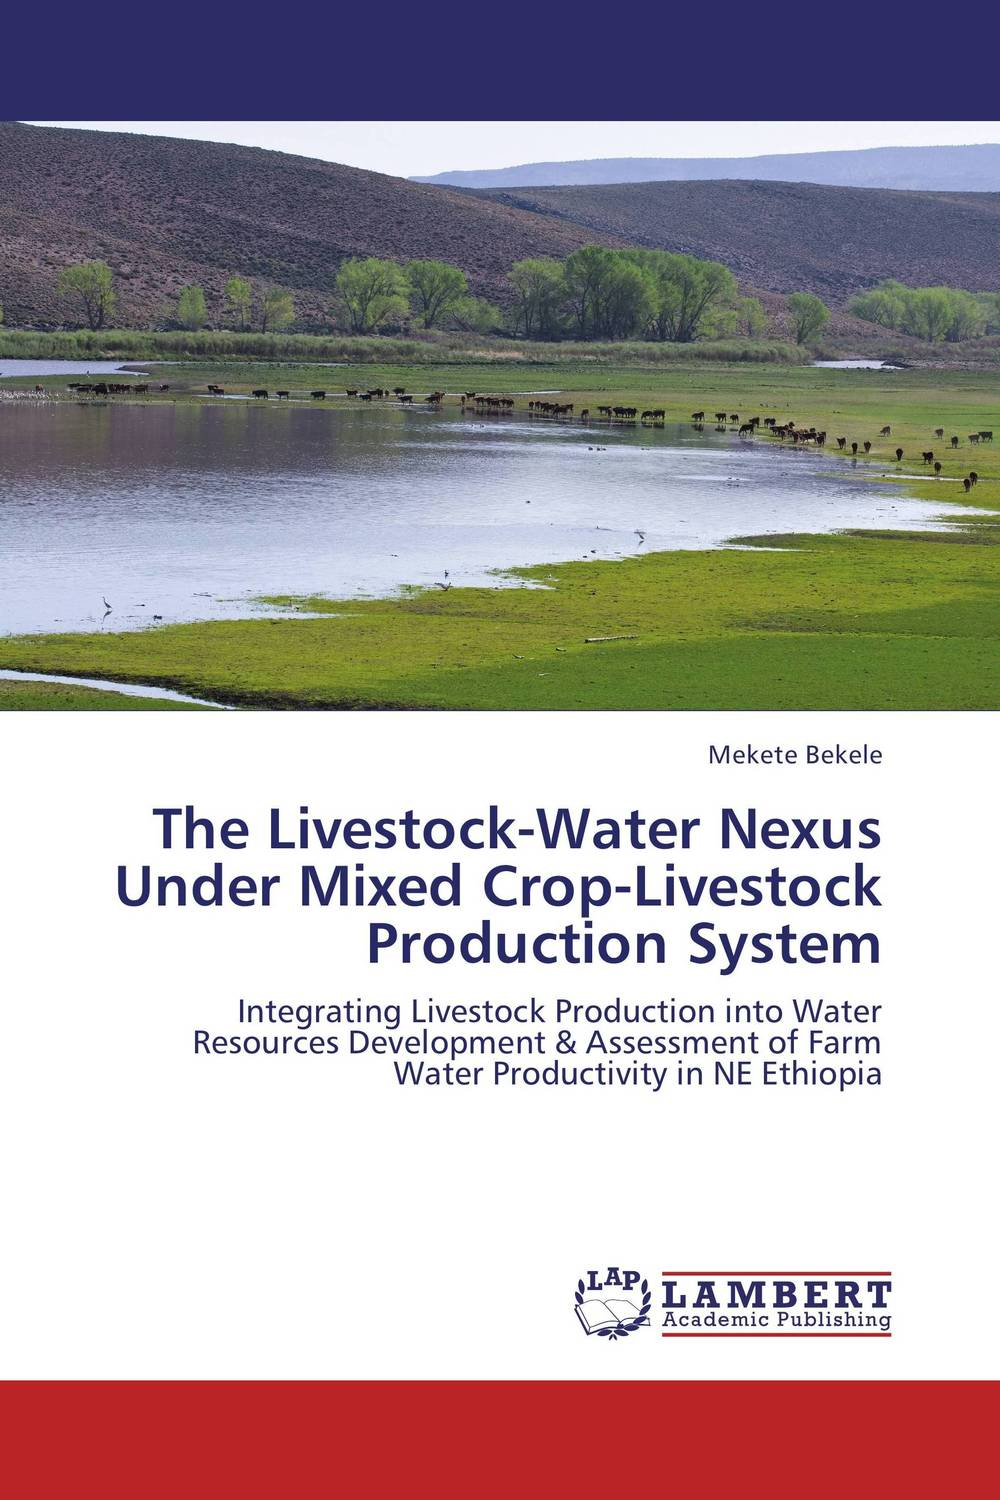 The Livestock-Water Nexus Under Mixed Crop-Livestock Production System piero кошелек piero 42м2 90038 50 1402п 54 голубой